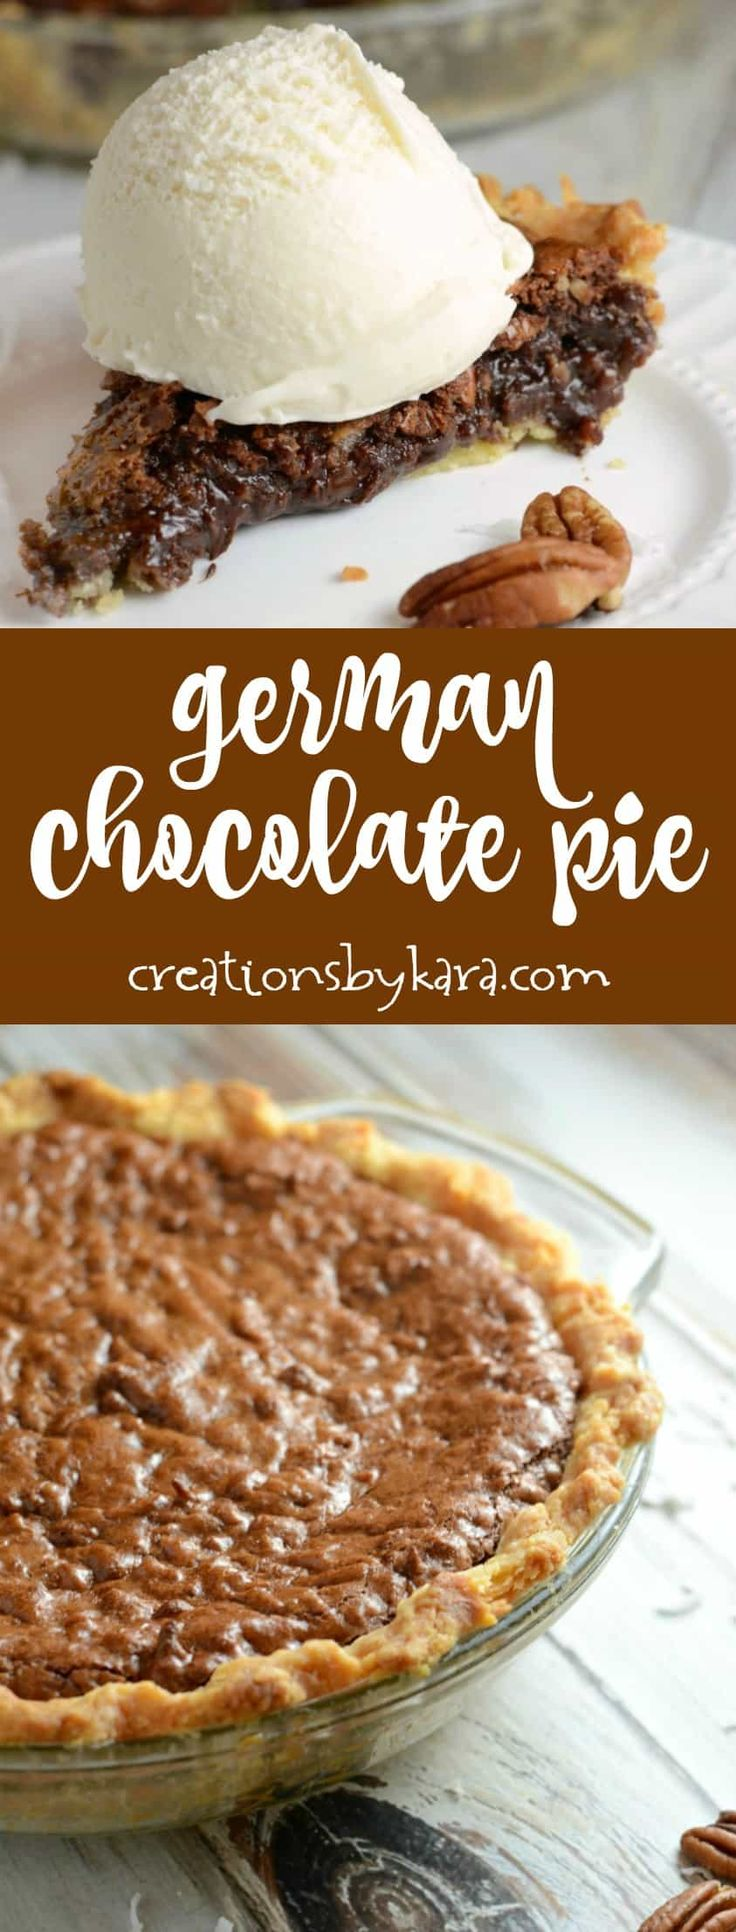 Recipe for German Chocolate Pie - if you love German chocolate cake, you must try this German chocolate pie. Every bite is decadent - and it is easy to make!